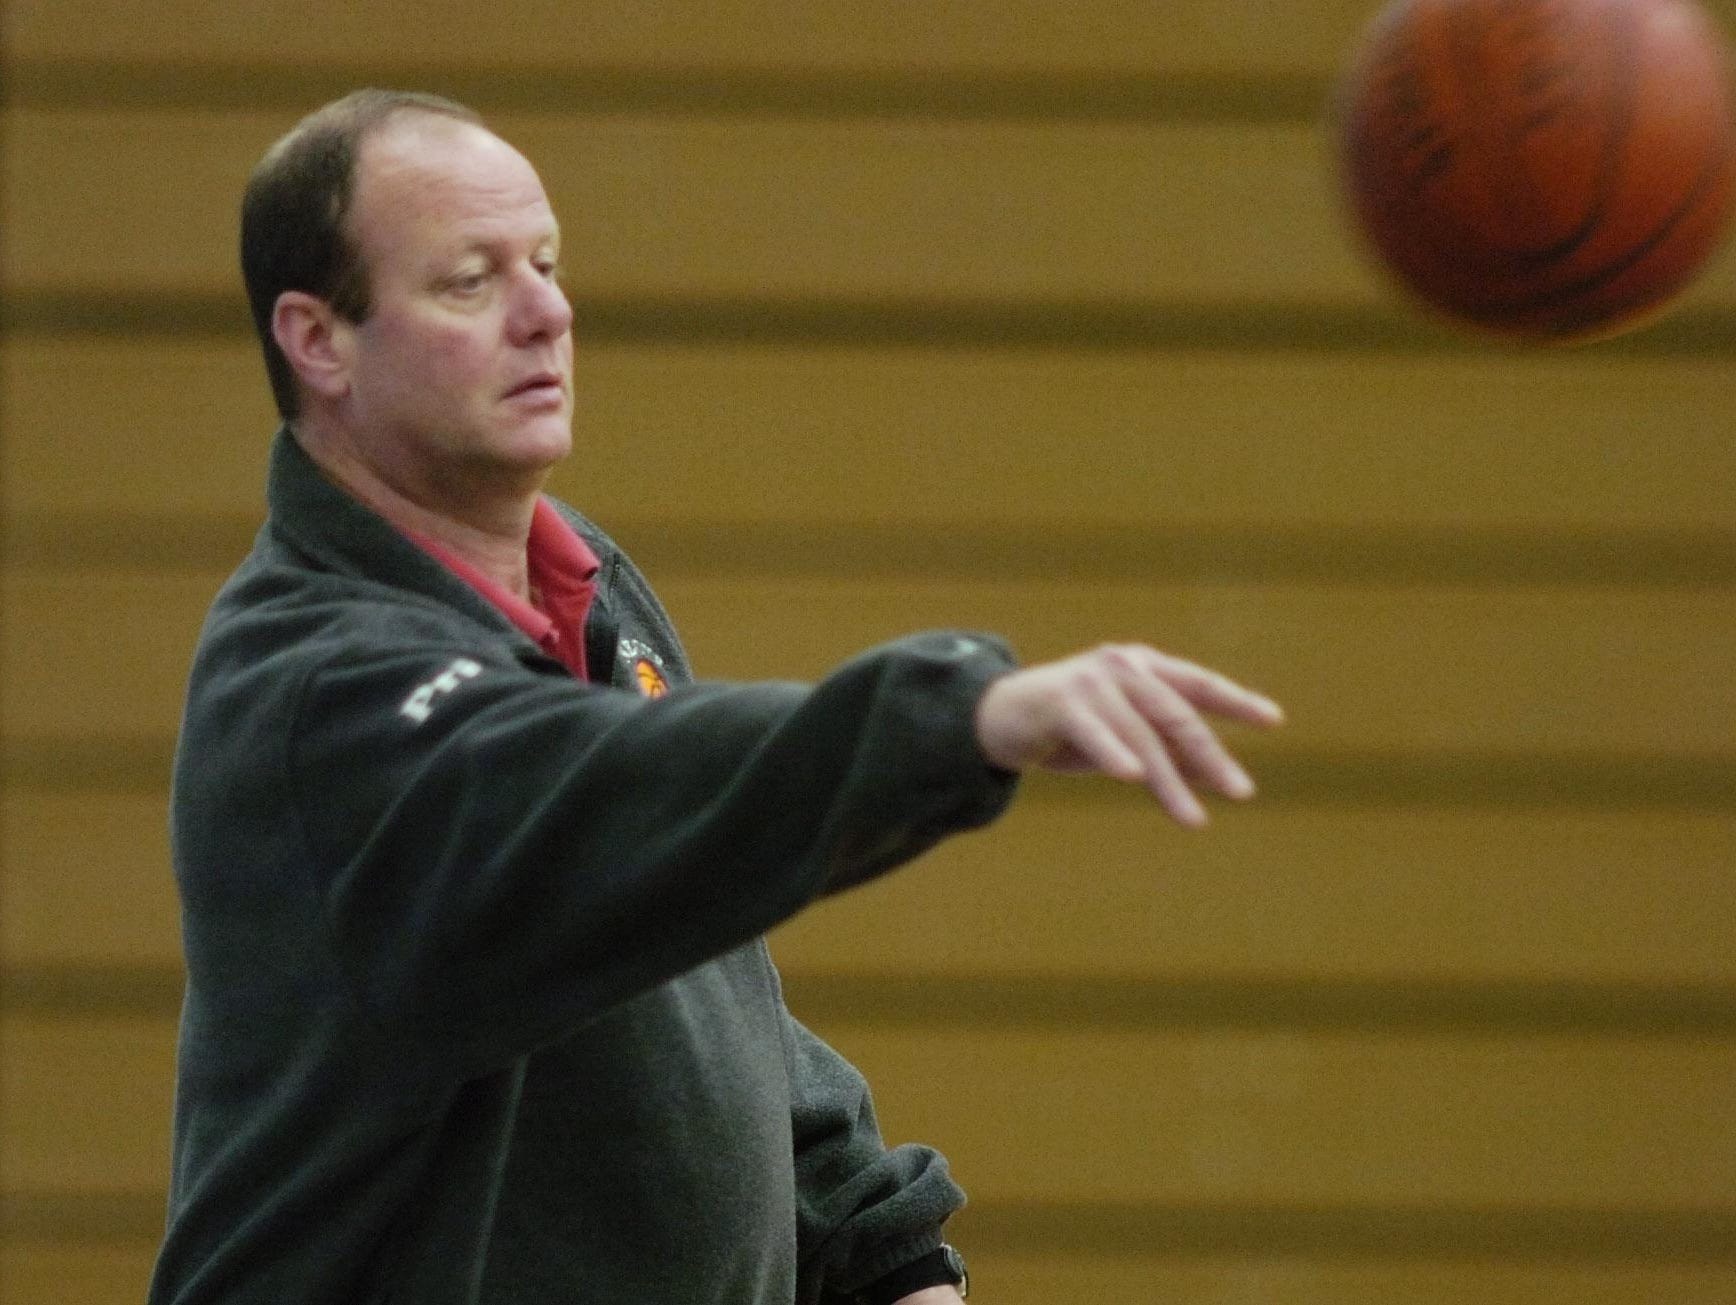 Mark Storm, shown conducting a girls basketball practice at Honeoye in 2006, was not approved by the school's Board of Education to return as the boys basketball coach next season.